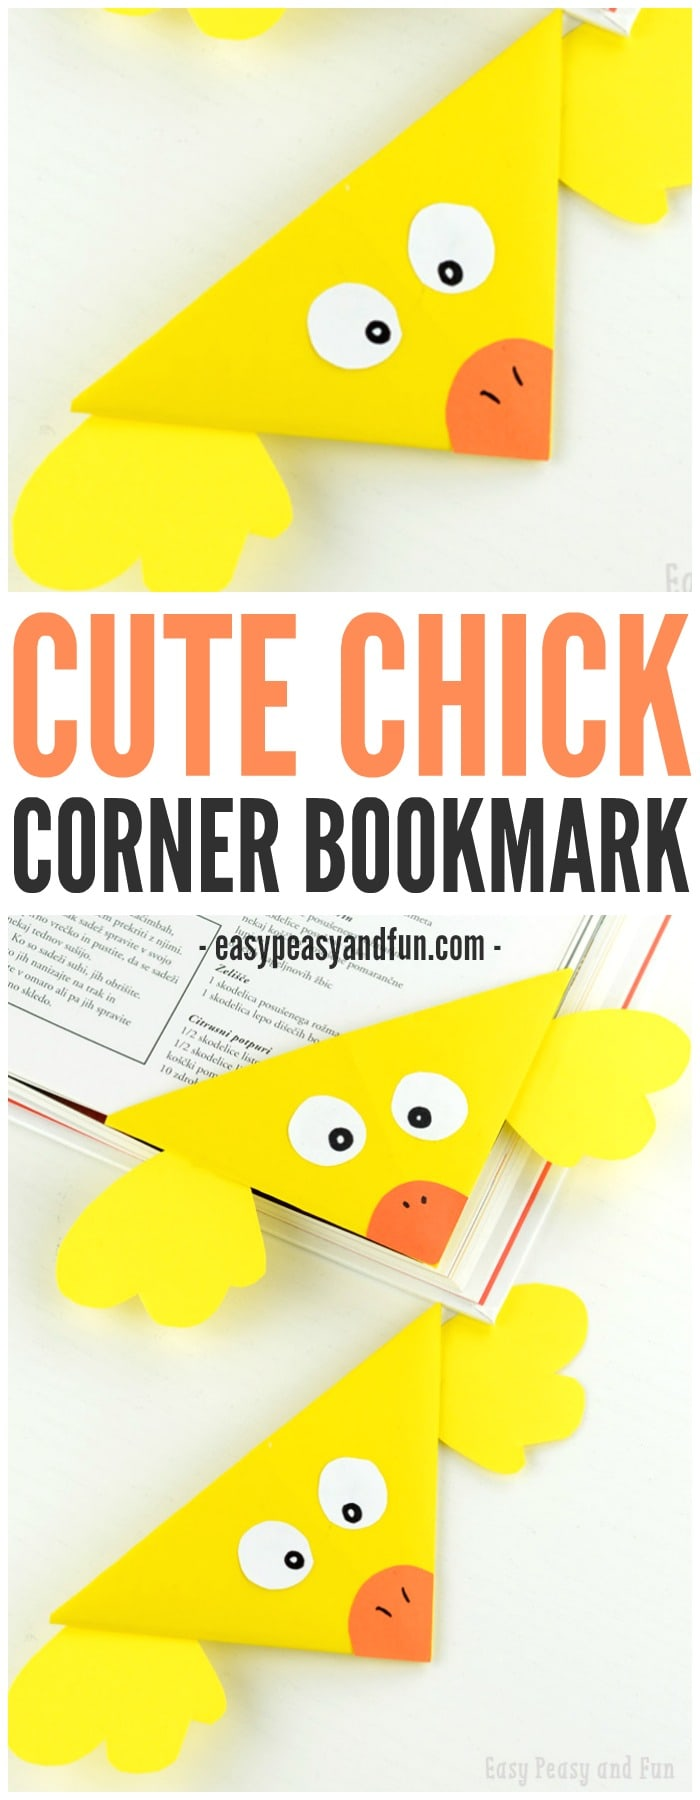 Cute Chick Corner Bookmark Origami for Kids